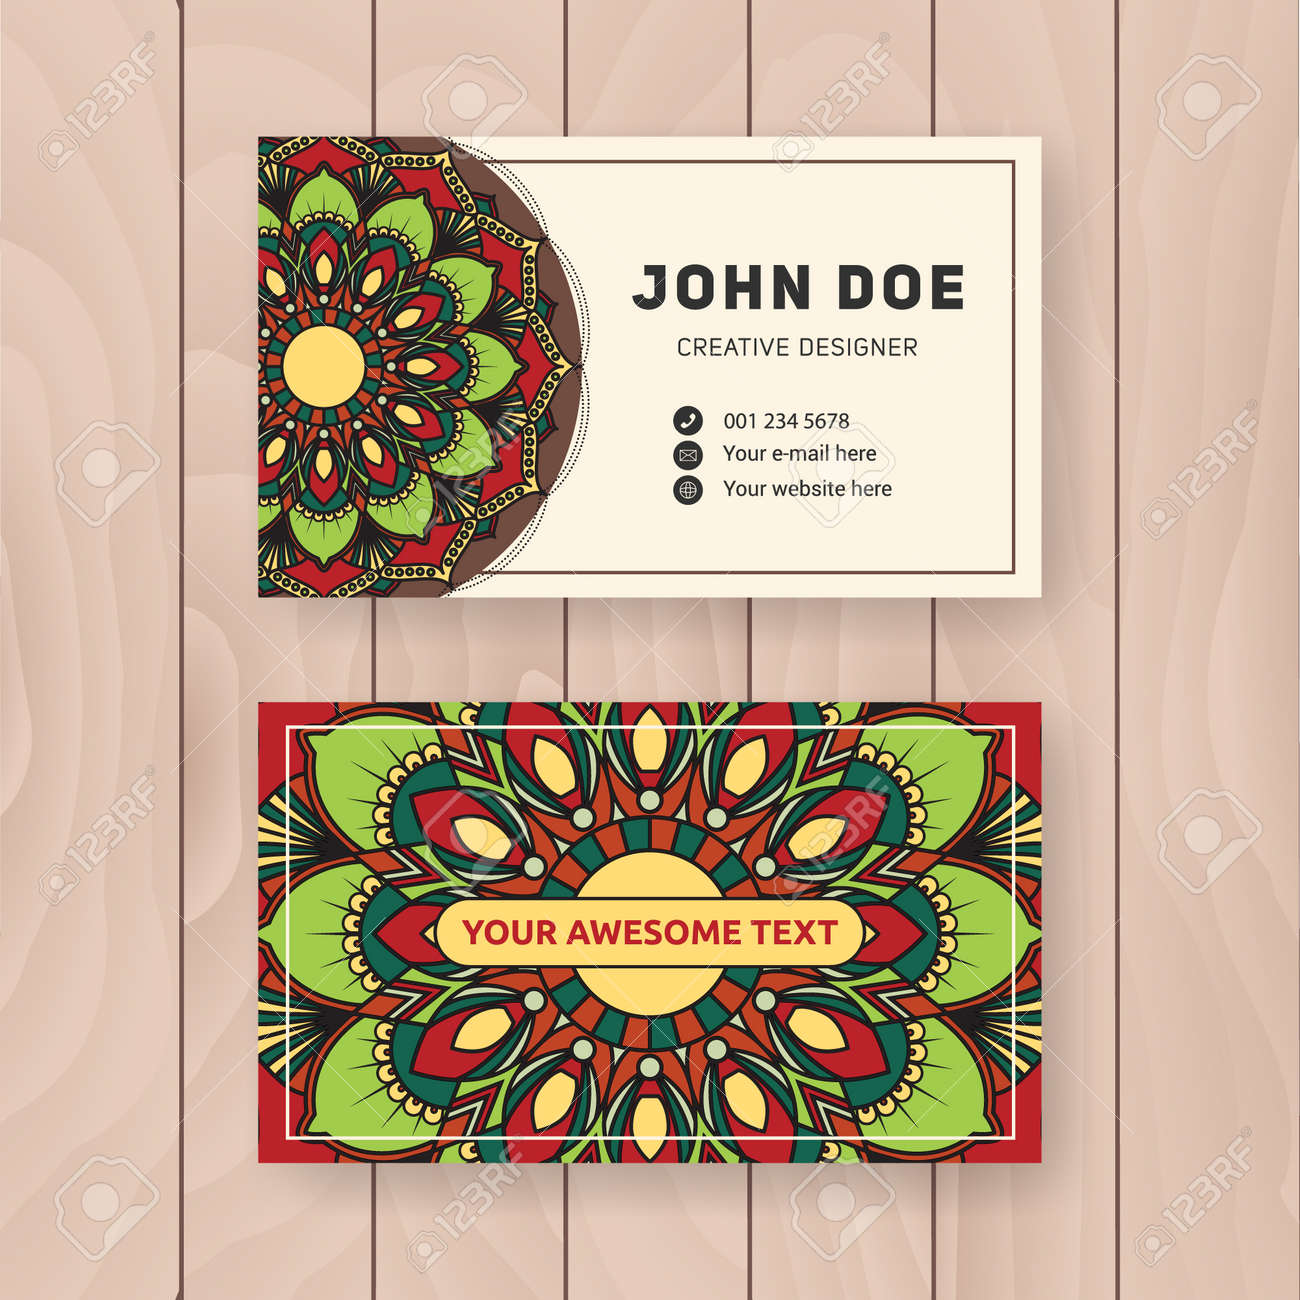 Creative useful business name card design vintage colored mandala creative useful business name card design vintage colored mandala design for personal name card reheart Gallery